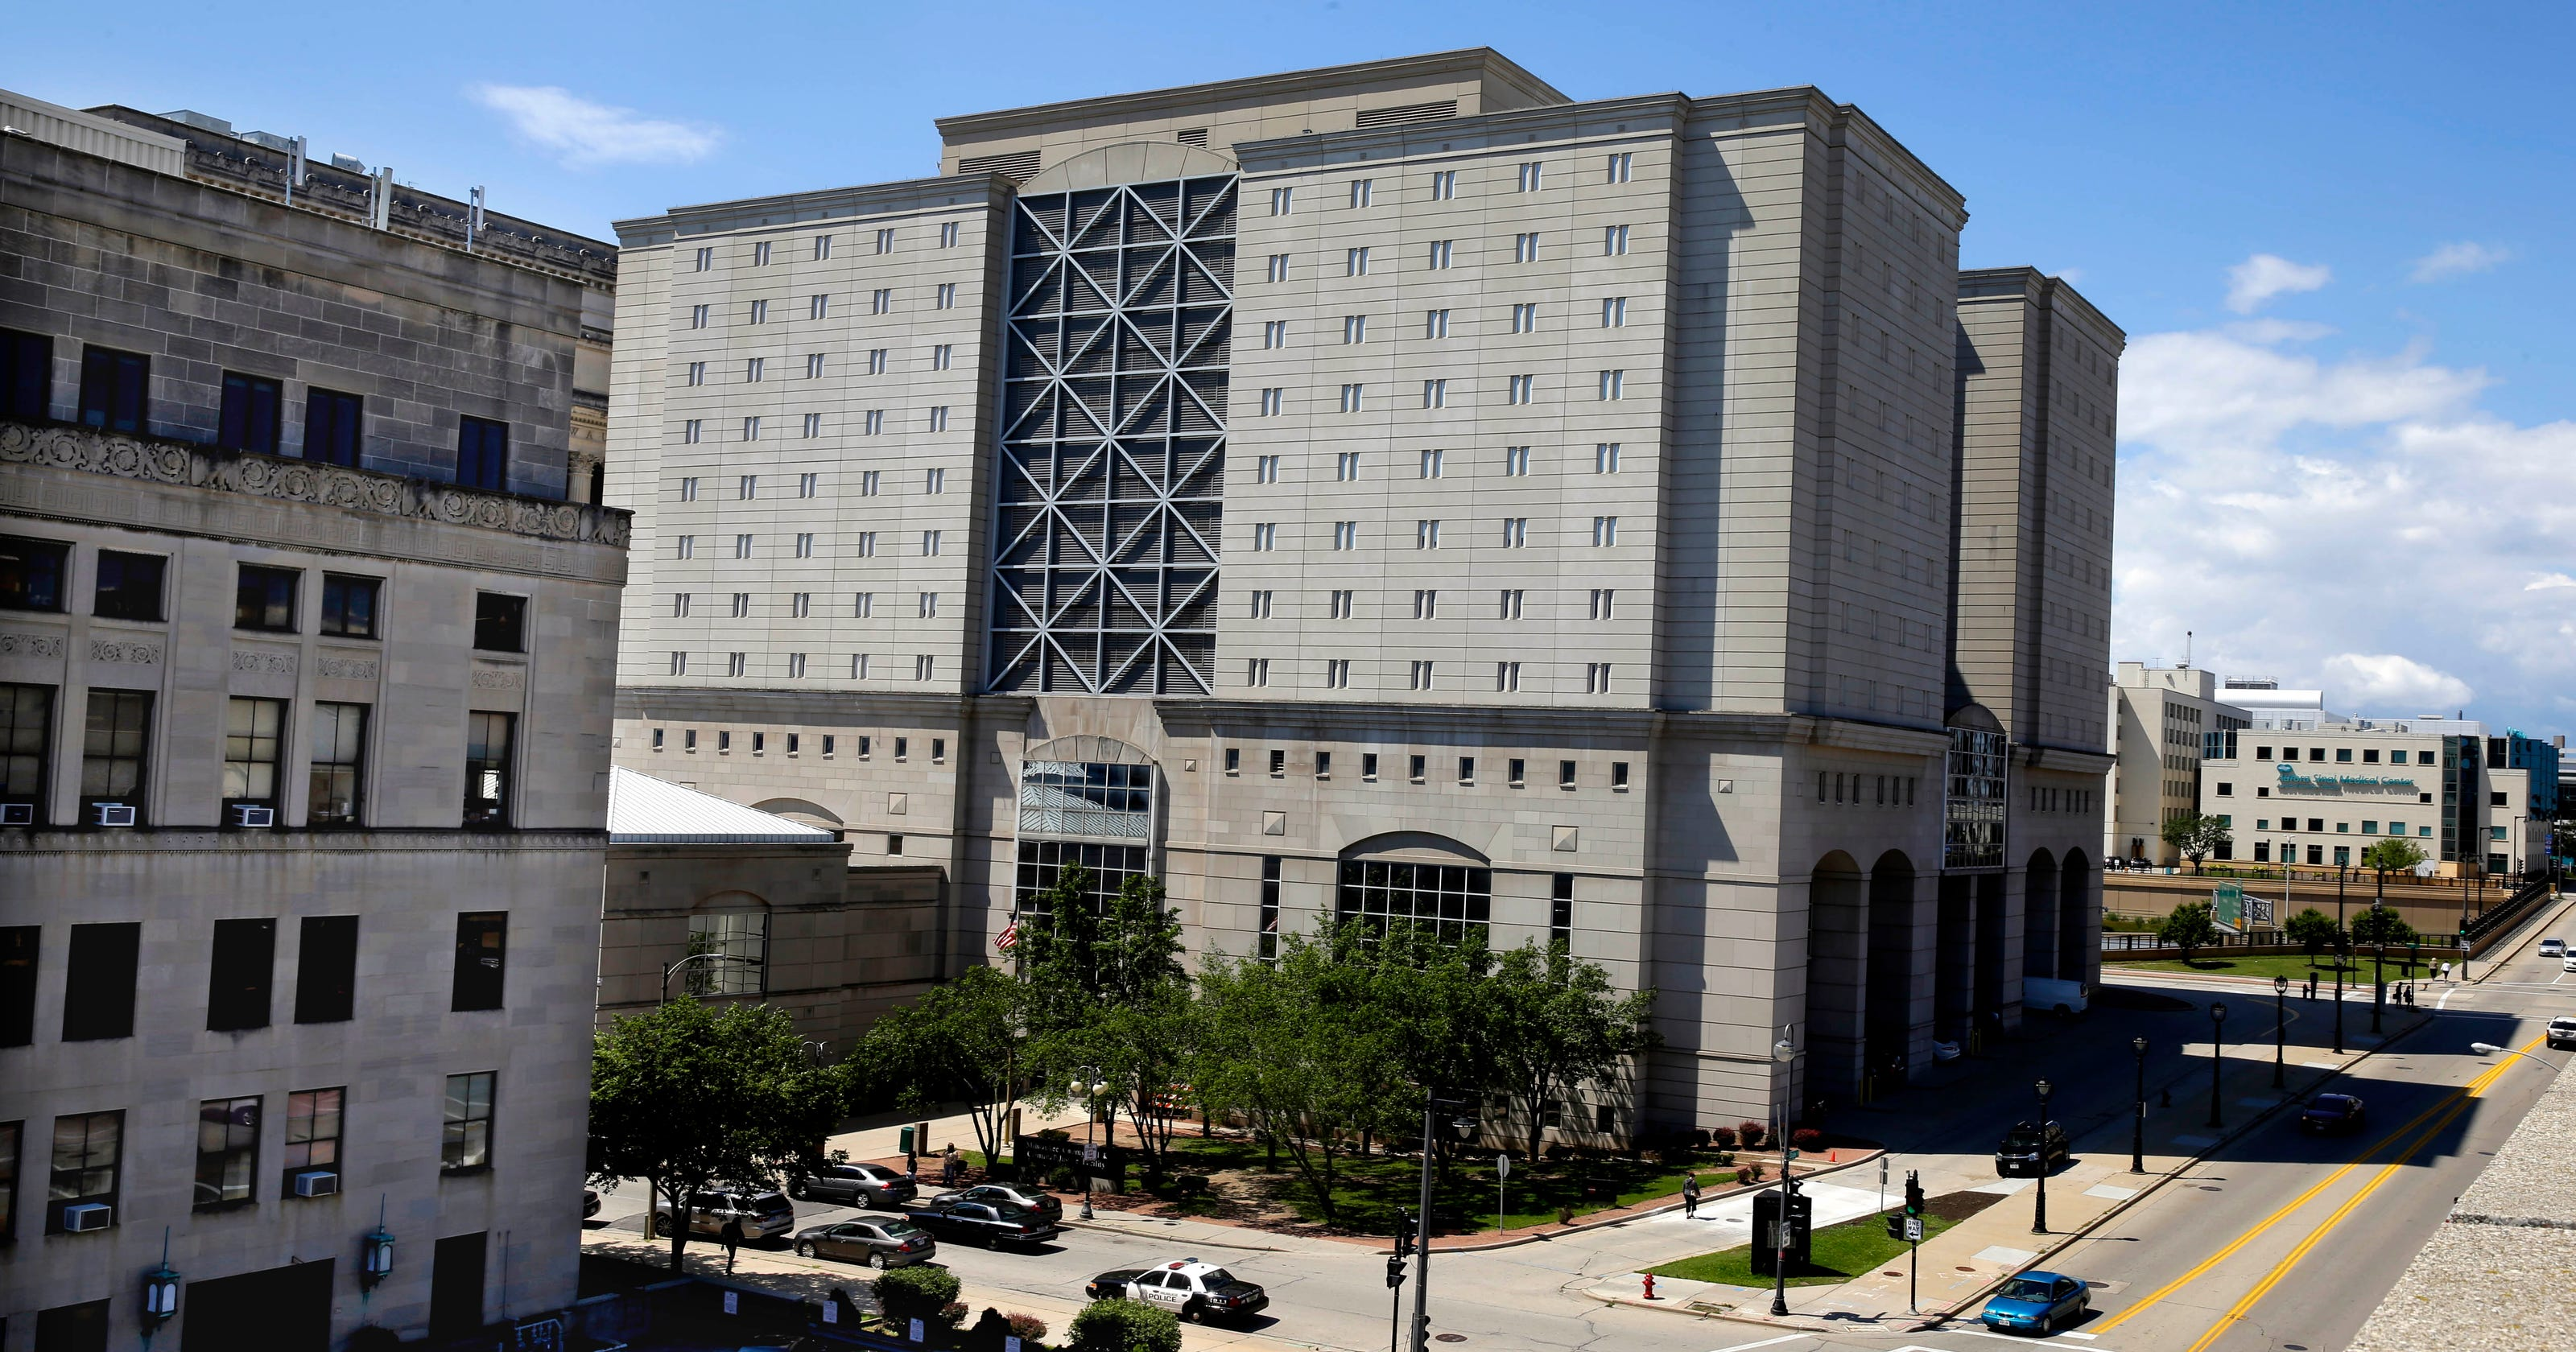 Firm recommended for inmate medical services had problems elsewhere